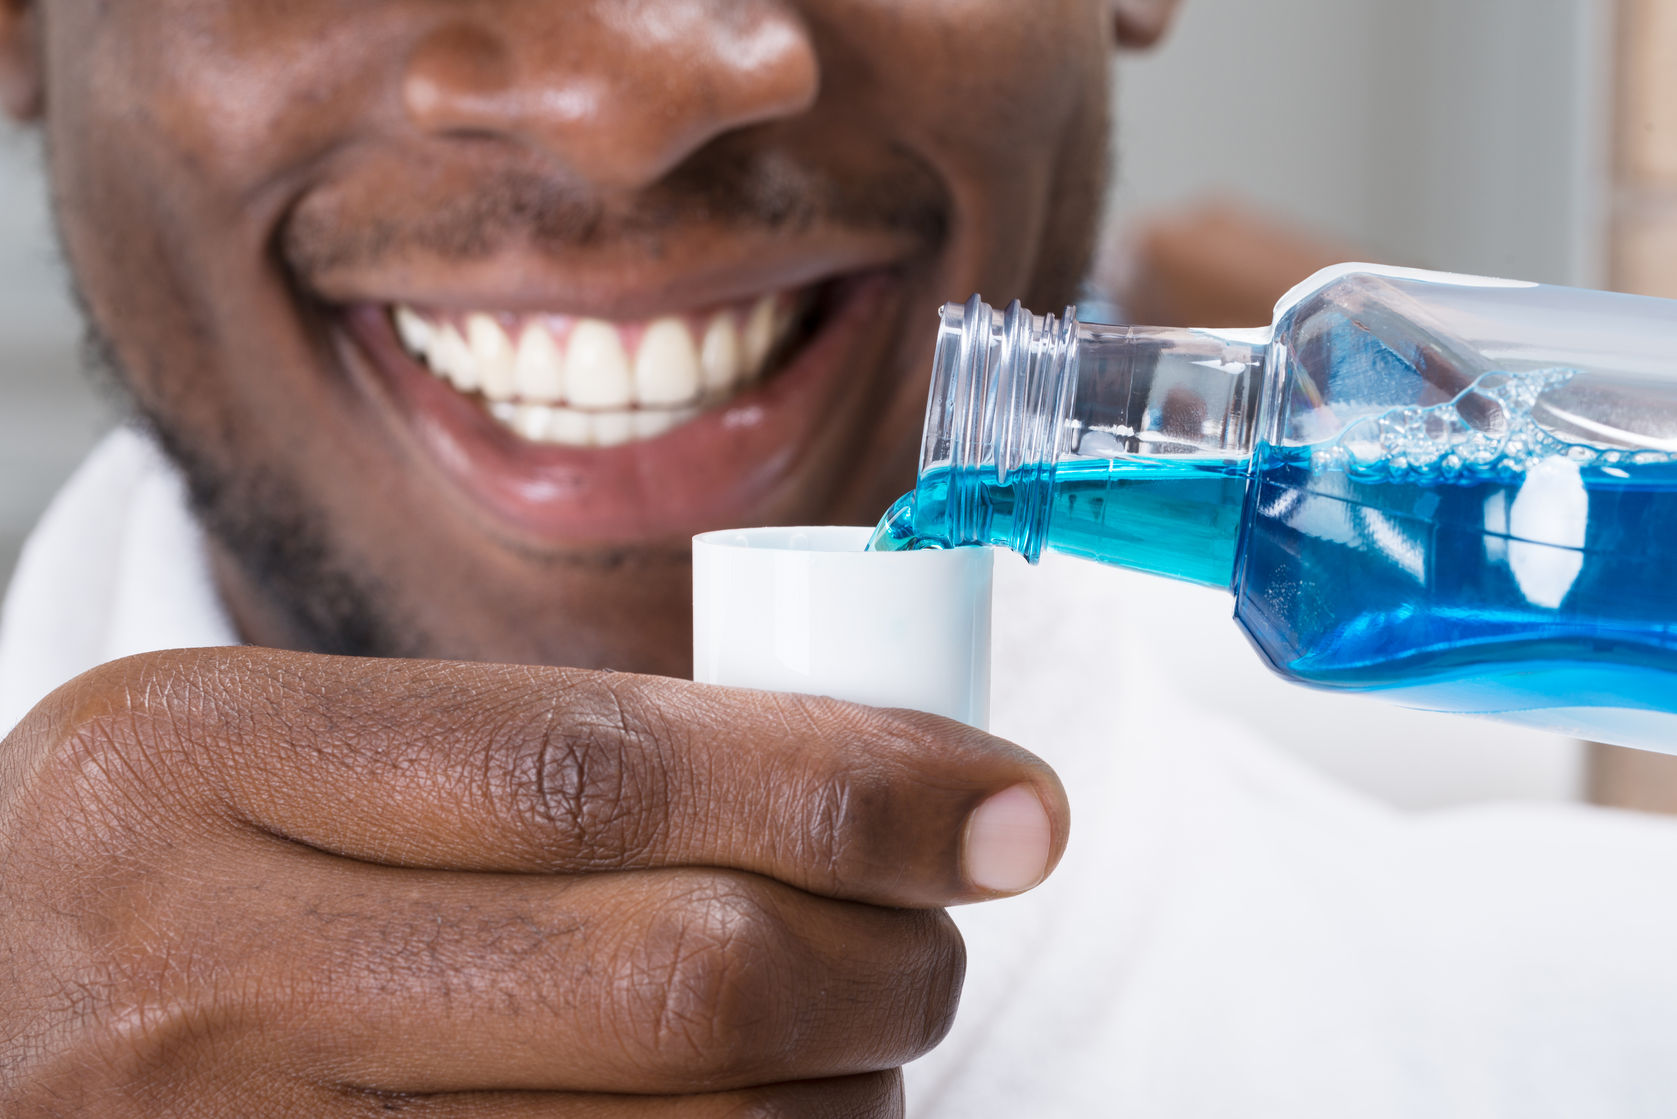 61134869 - close-up of a smiling african man pouring mouthwash into cap